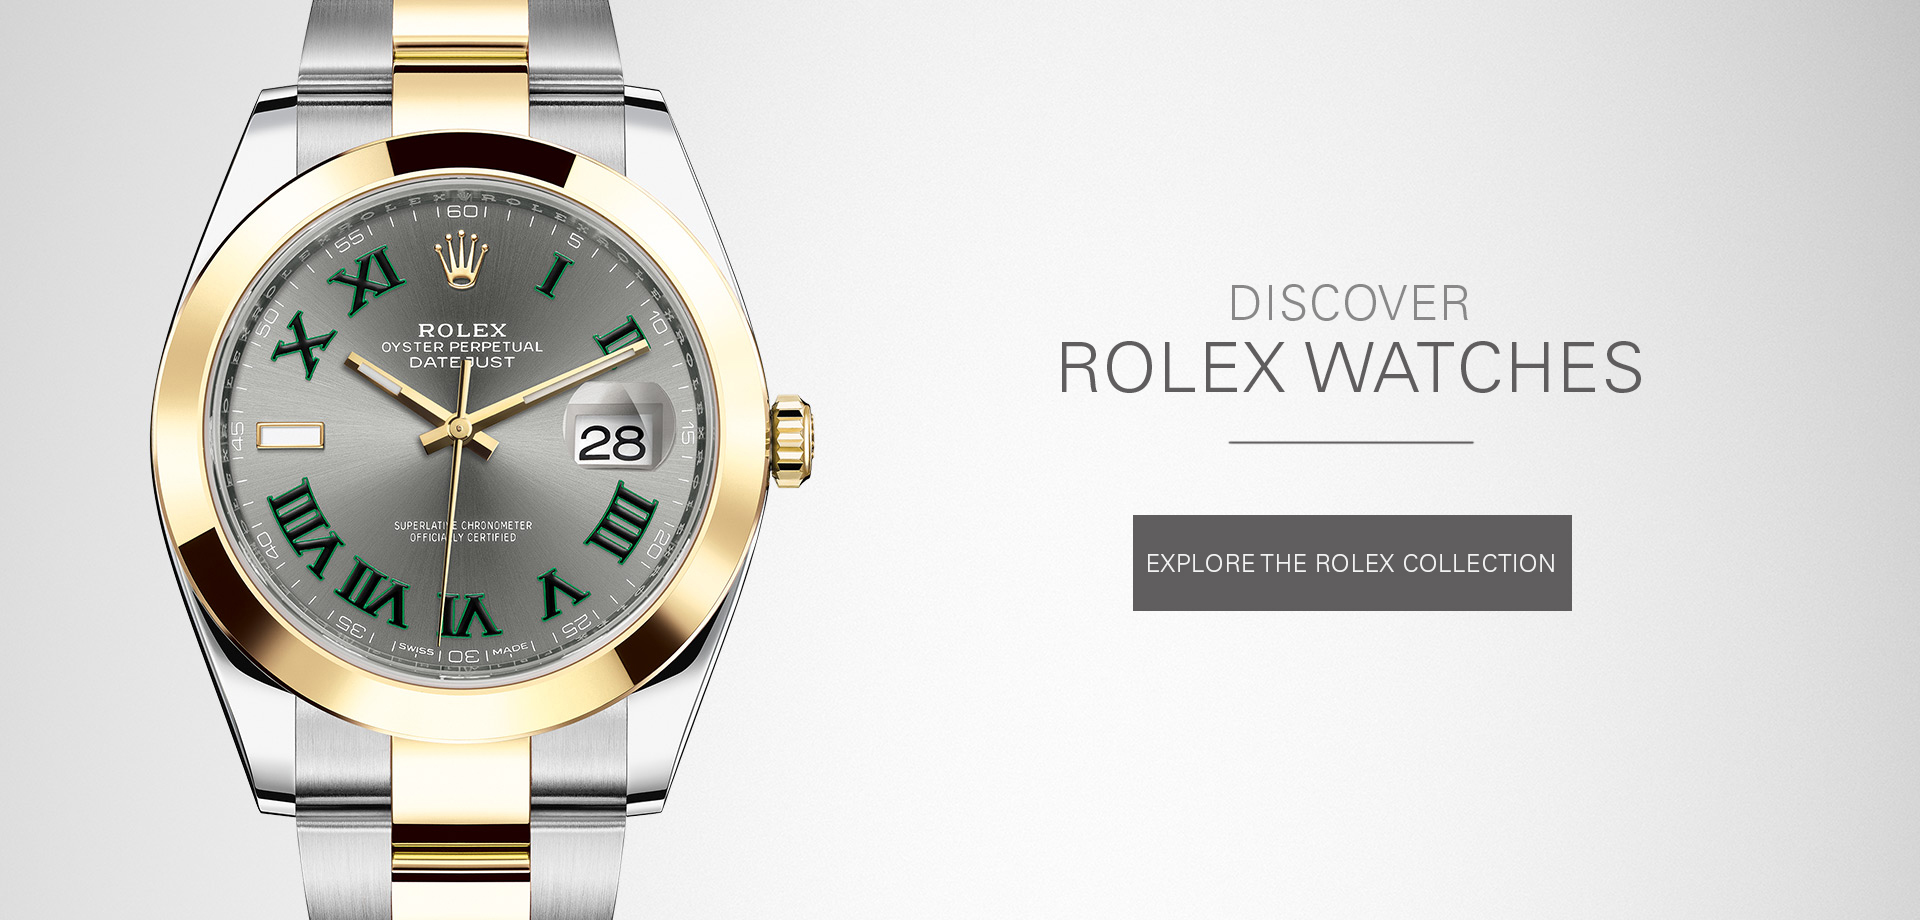 Discover the Latest Rolex Watches at Betteridge